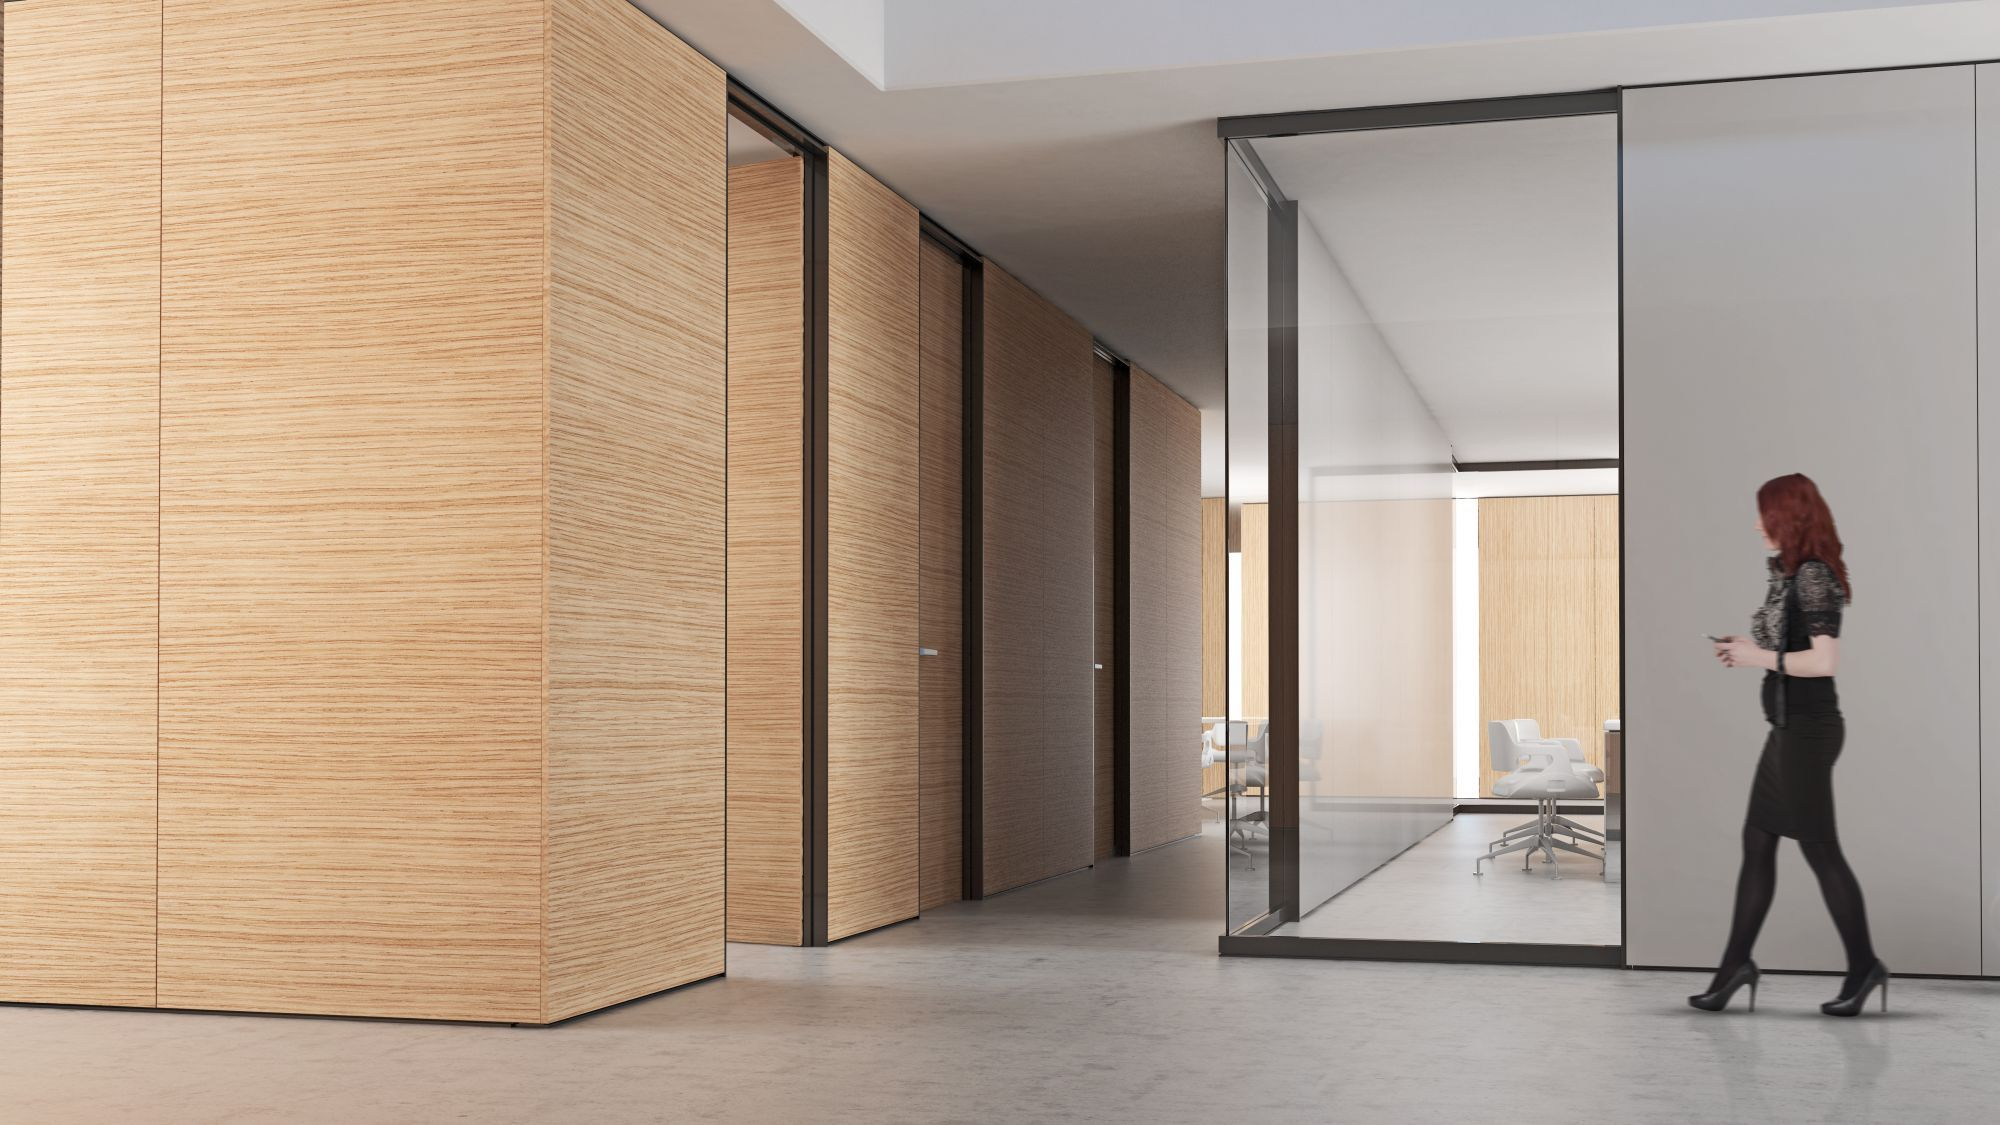 Beau CGarchitect   Professional 3D Architectural Visualization User Community |  Modular Office Wall Partitions   5